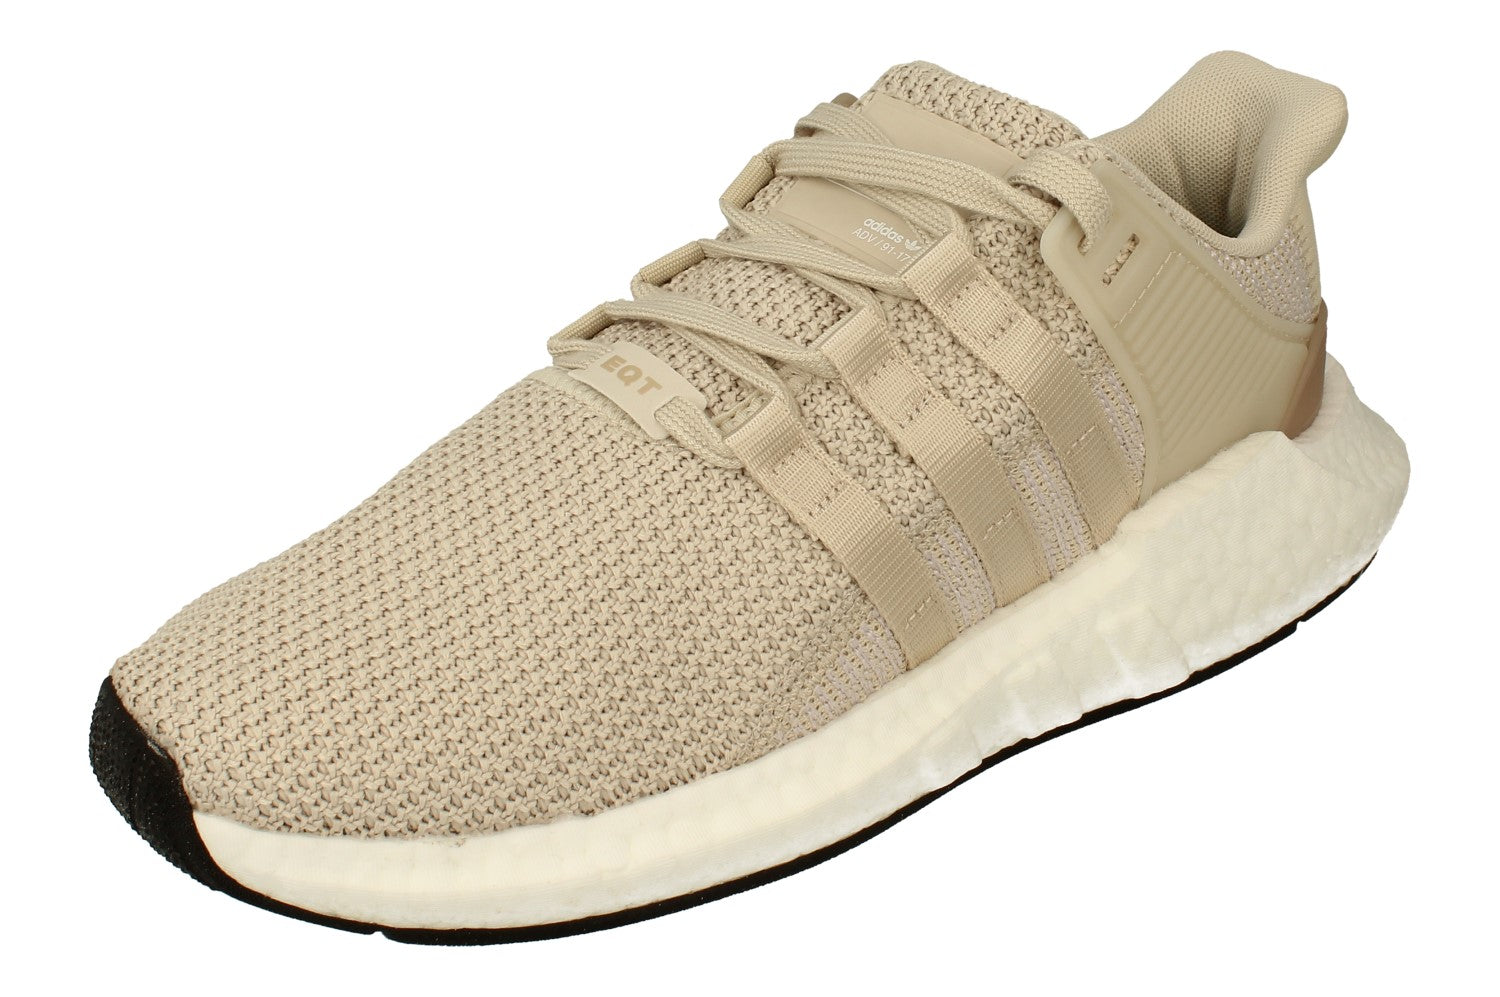 online retailer 930b1 2c534 Adidas Eqt Support 93/17 Boost Mens Sneakers DB0332 ...